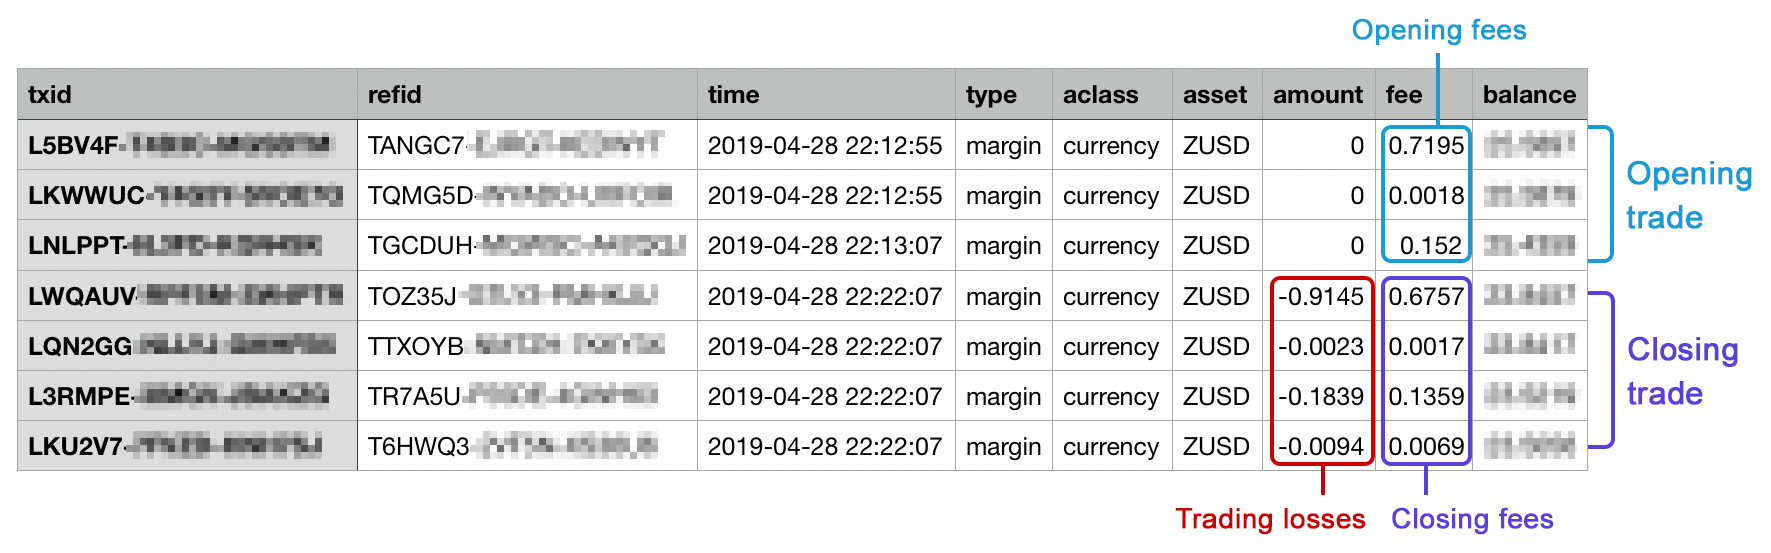 Ledger-margin-trading-pl.png